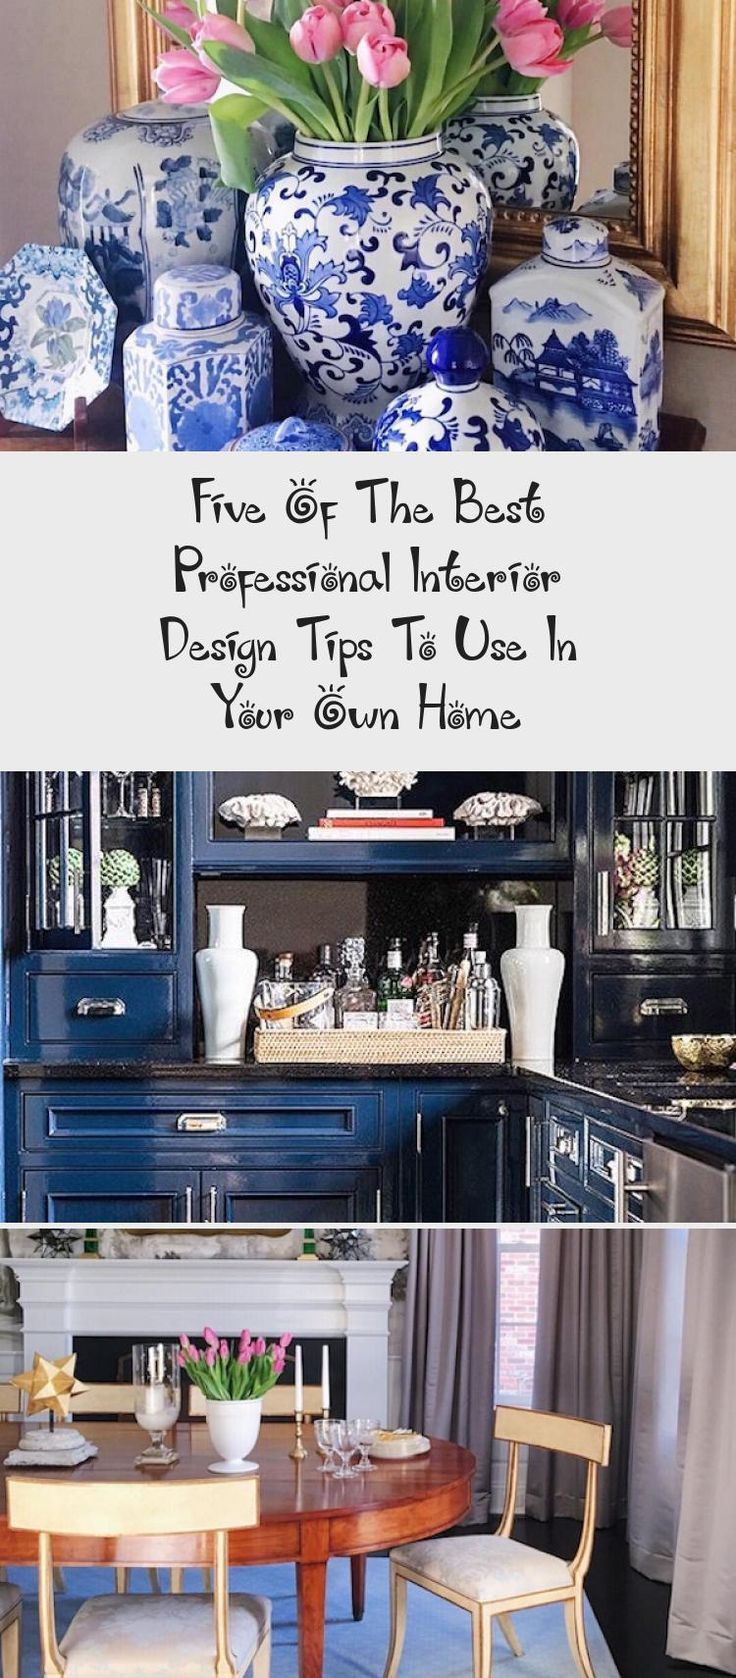 #interiordesignClassic  #interiordesignBohemian  #interiordesignCafe  #interiordesignMoodBoard  #interiordesignFurniture #Design #Tips  Interior Design Tips To Use In Your Own Home white kitchen with blue and white decor accent accessories